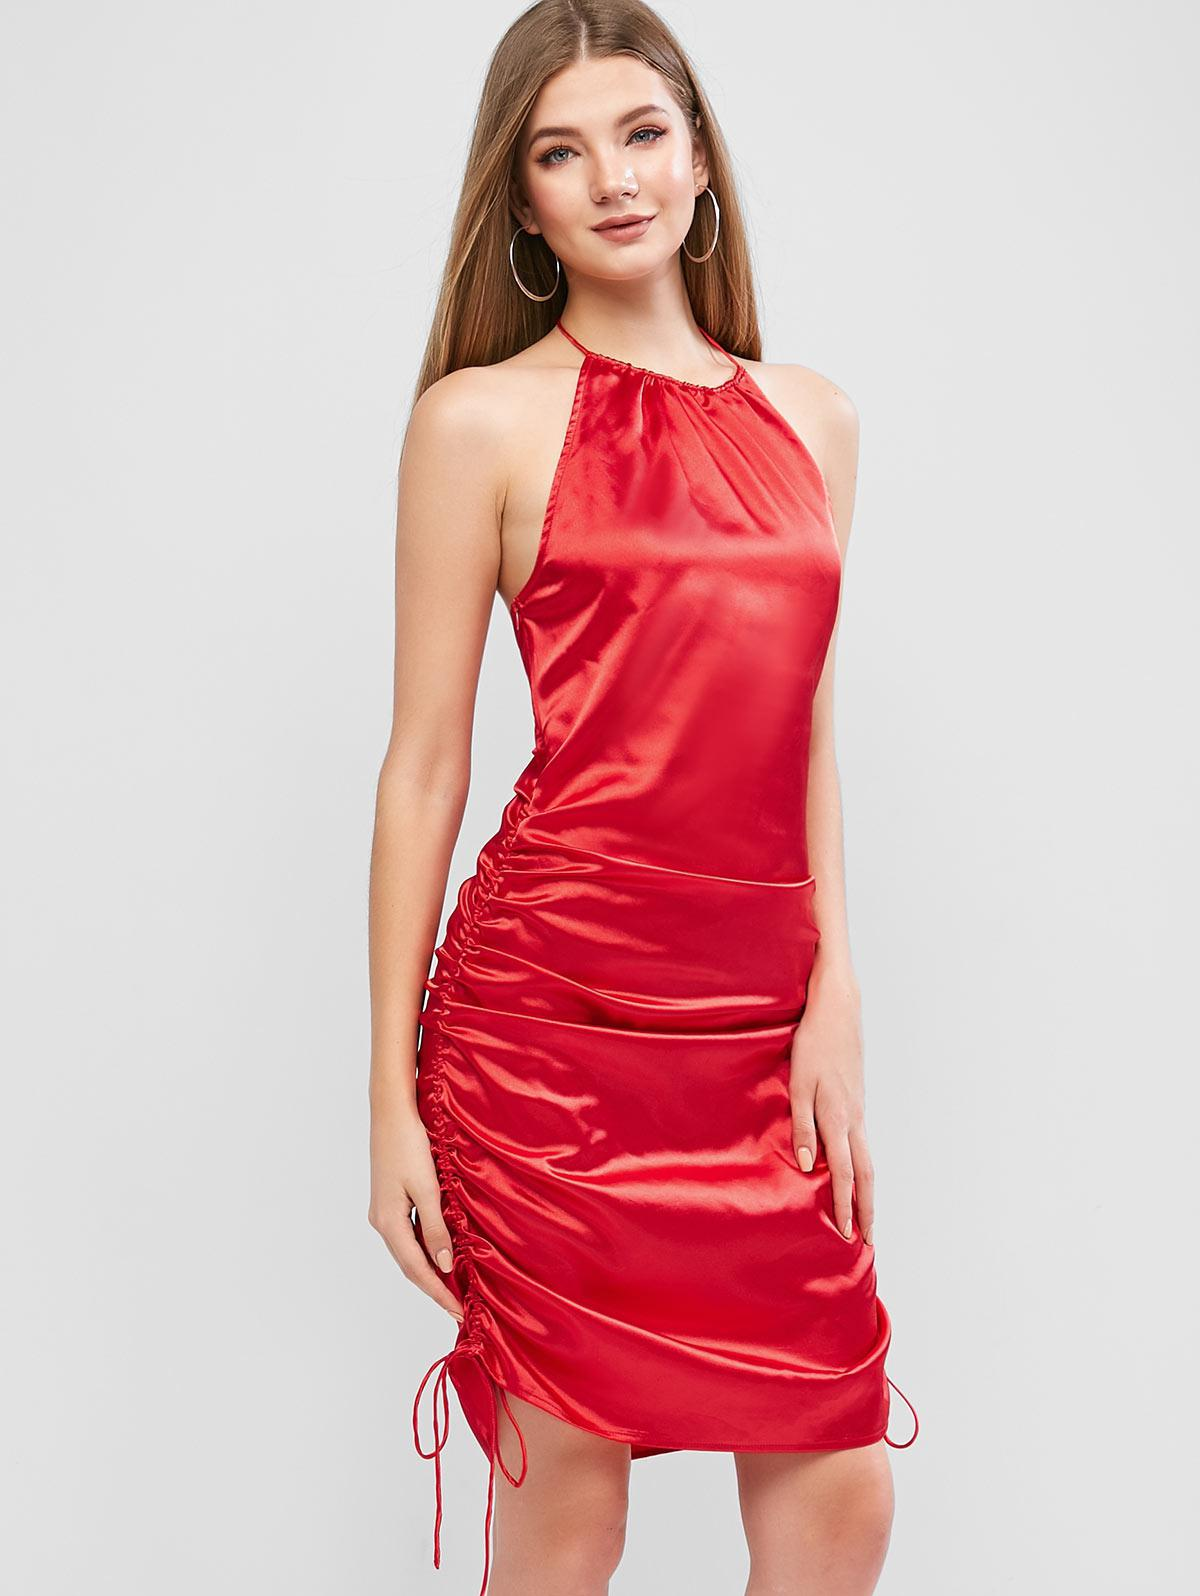 ZAFUL Satin Cinched Backless Halter Tie Dress